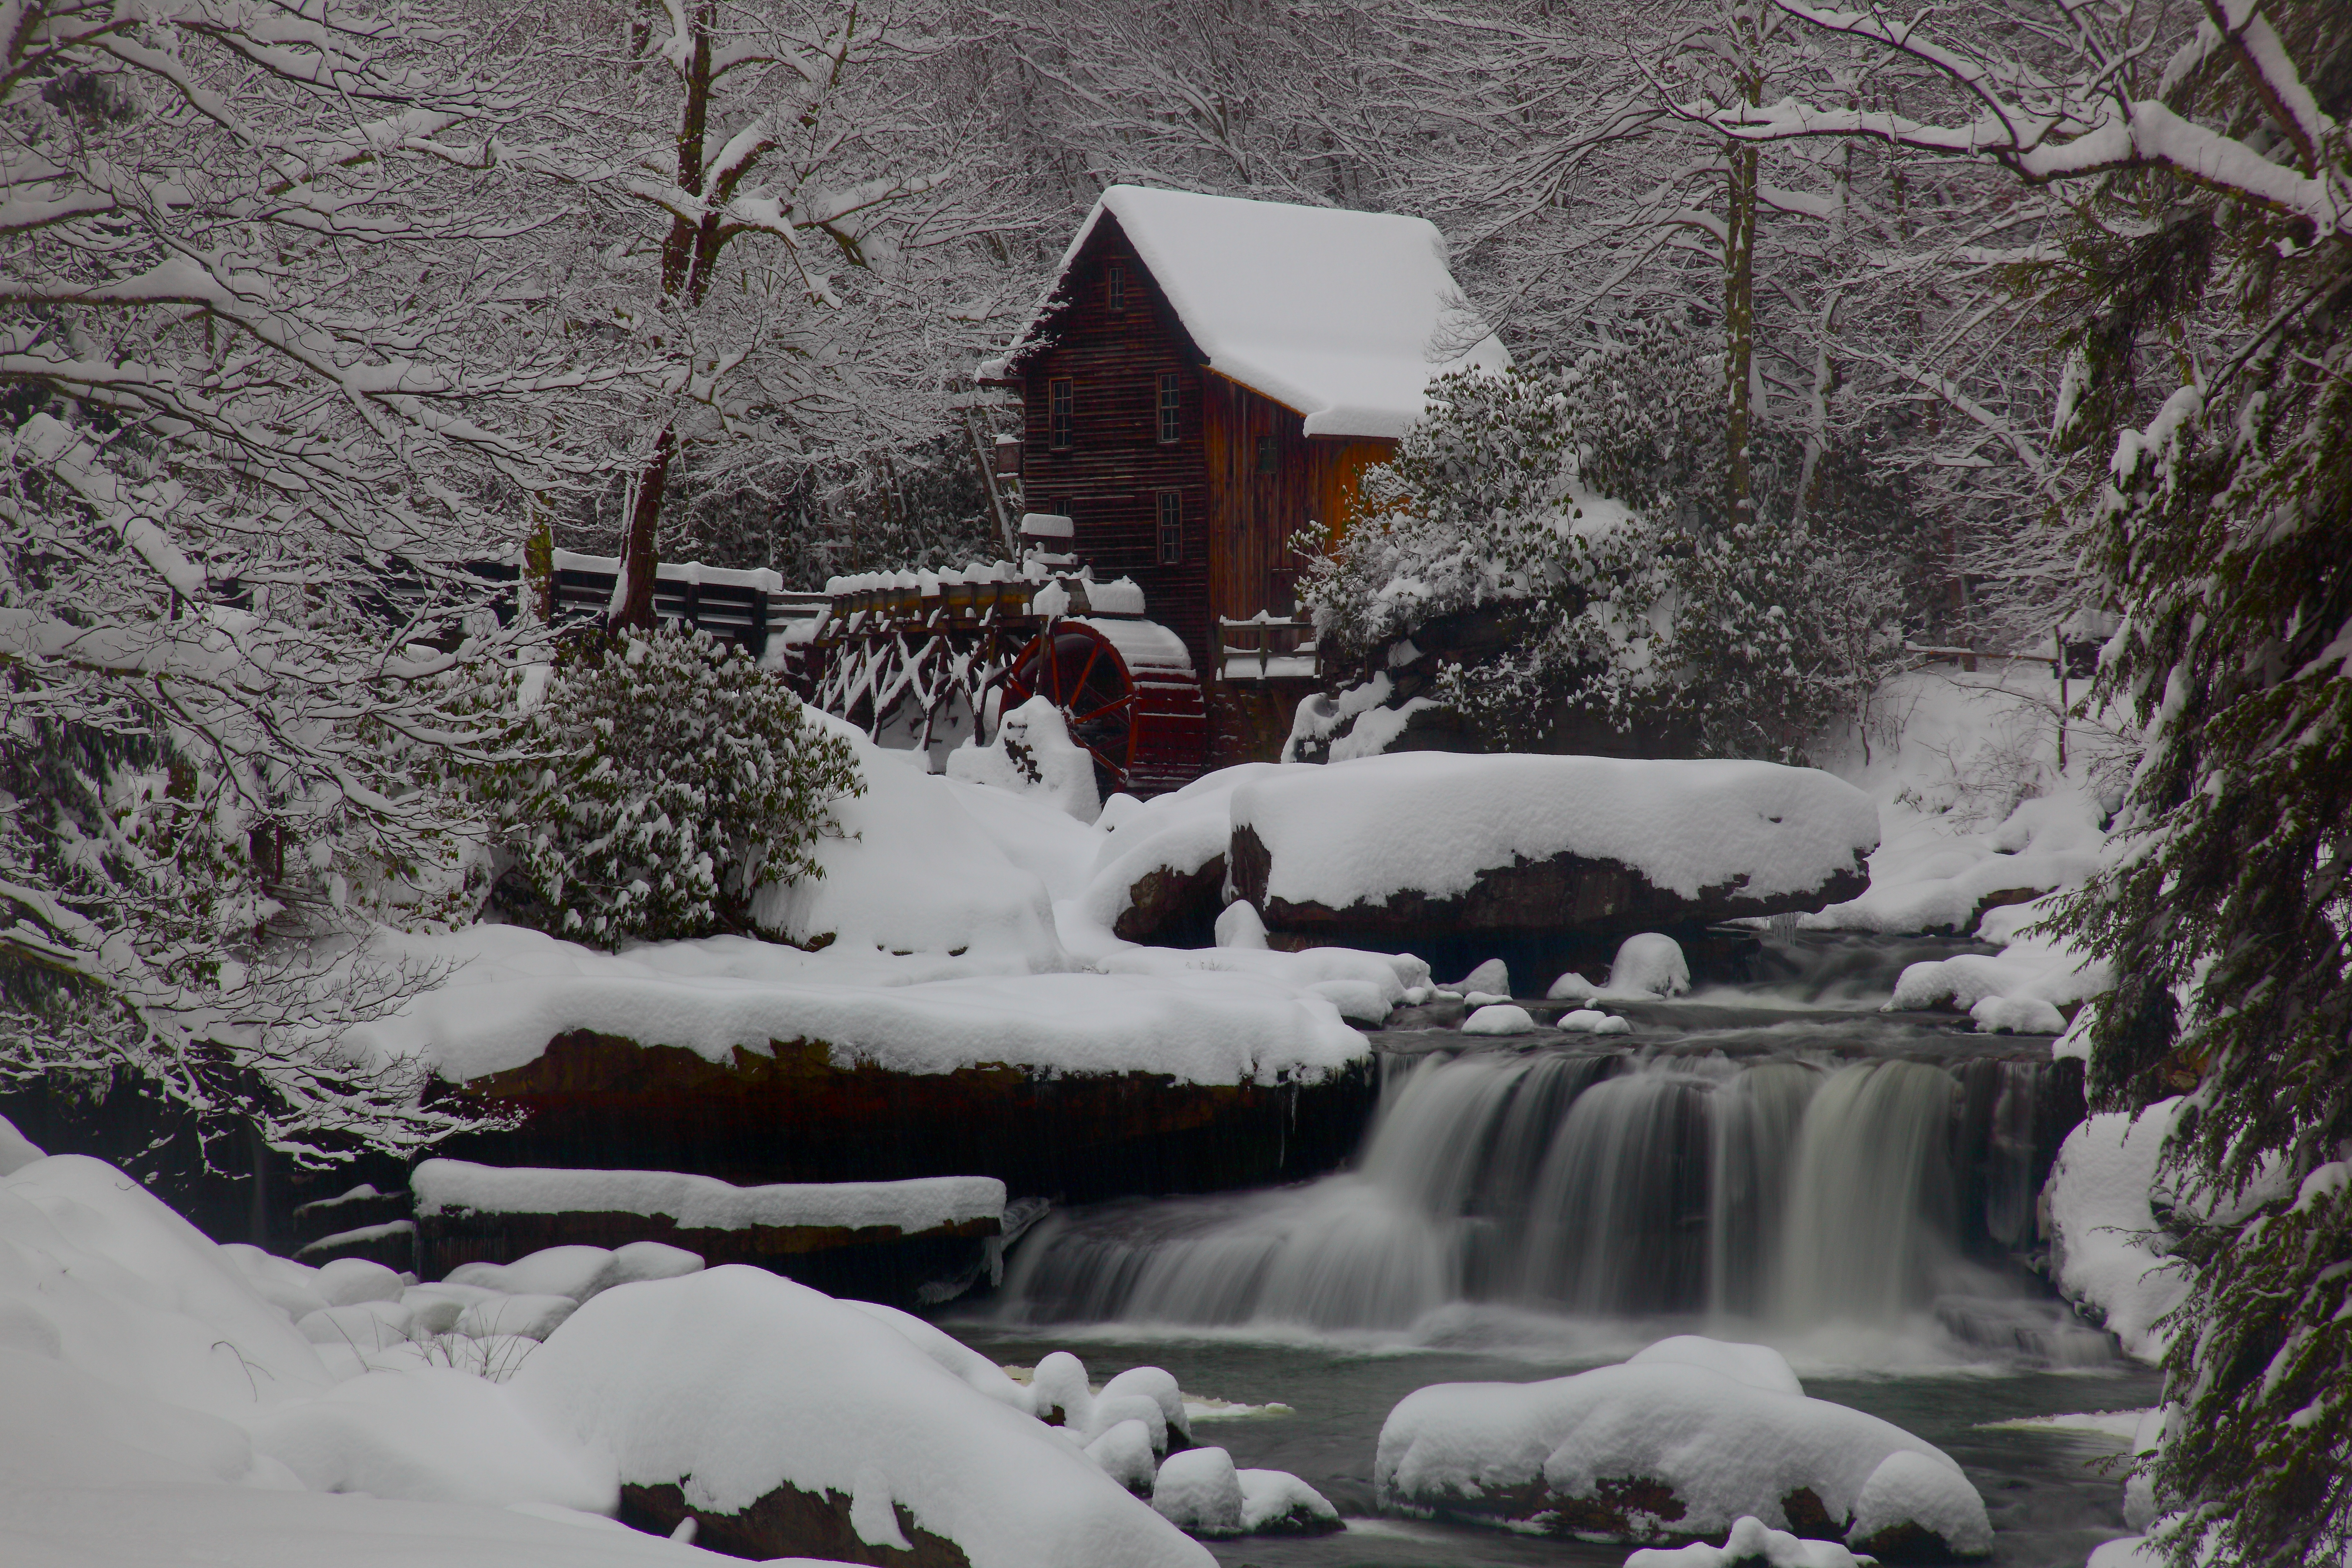 Wv Grist mill Waterfall Winter Snow Waterfalls Nature Pictures 5616x3744